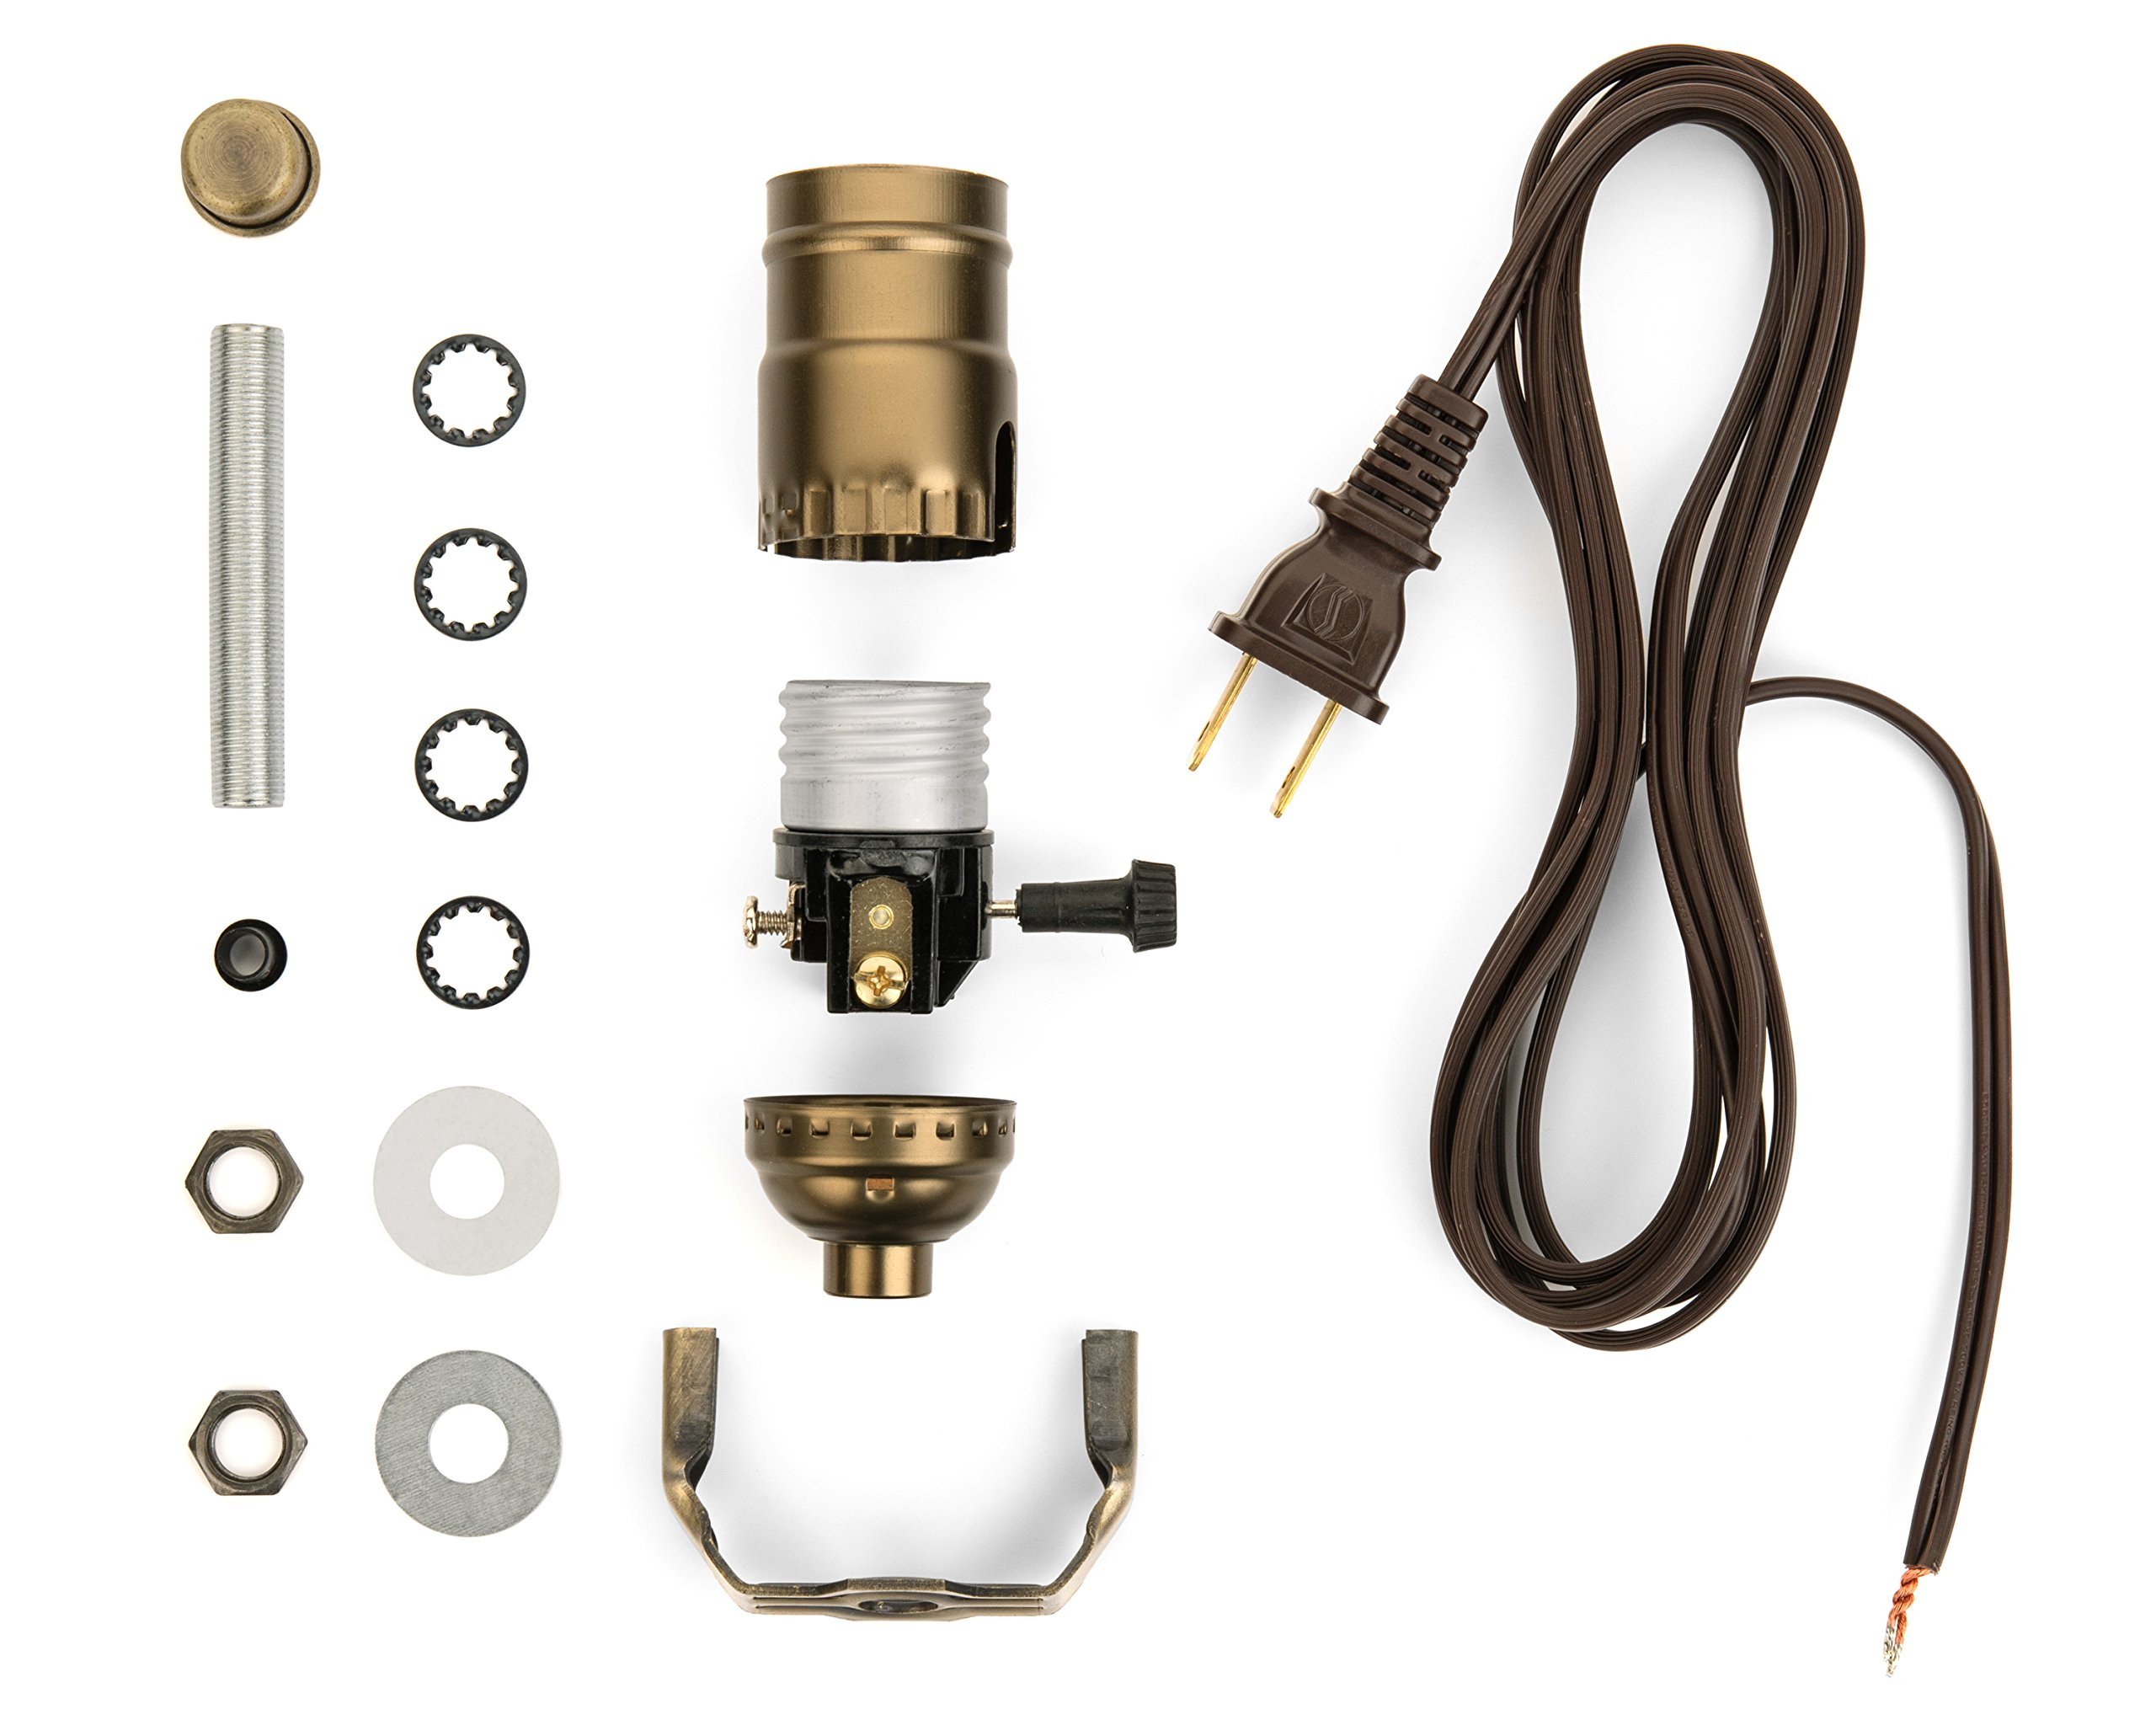 Lamp Wiring Kit - Make, Repurpose or Repair an Old Lamp with a Lamp Wire Kit - Antique Brass Socket - 12 Foot Long Brown Cord - DIY Lamp Making Kits Allow You to Build Your Own Lamp by I like that lamp